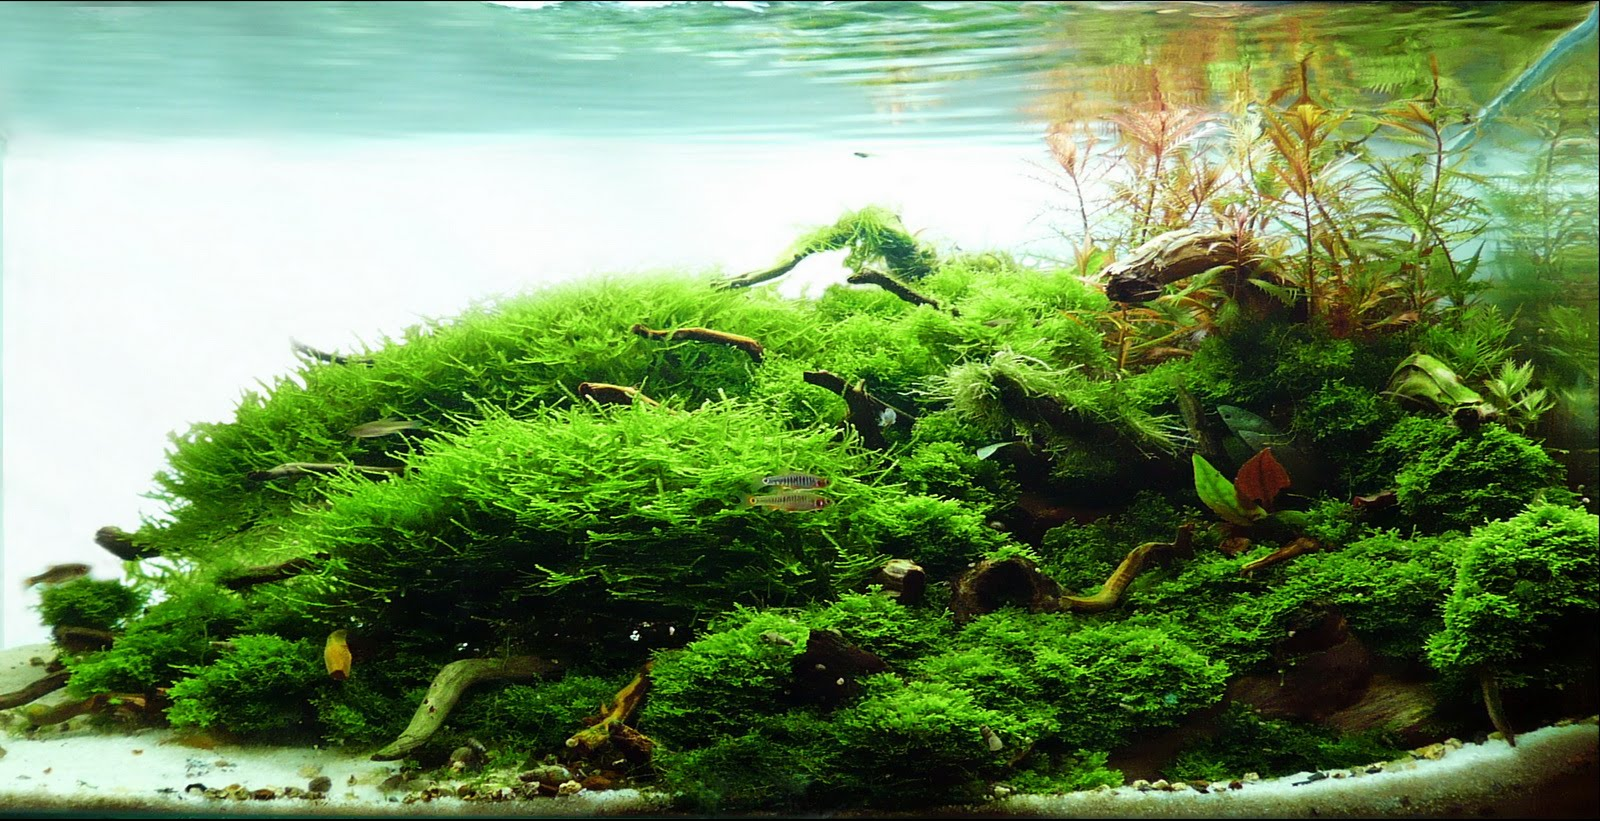 Manage your freshwater aquarium tropical fishes and plants aquatic scapers europe - Aquascape espana ...